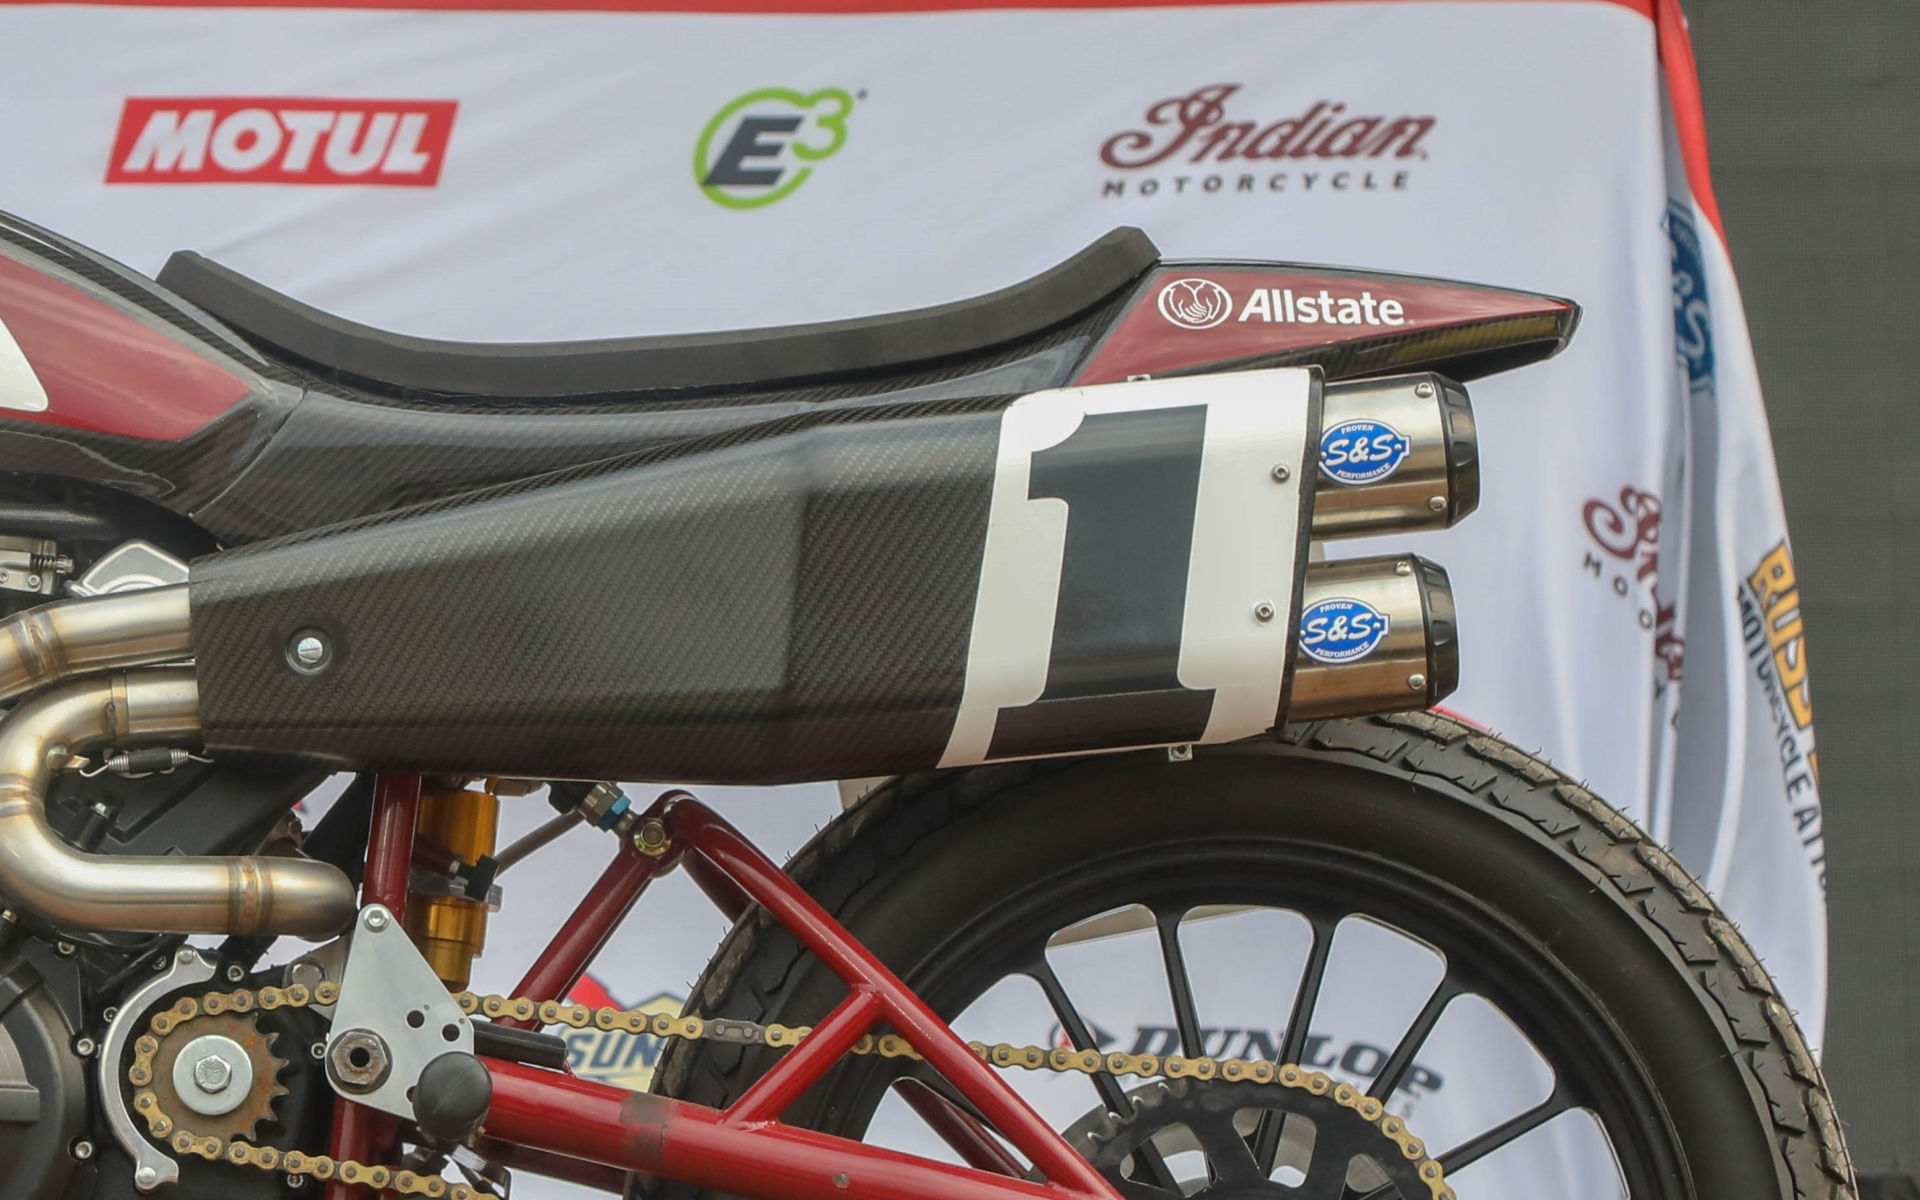 An S&S Cycle exhaust system on Briar Bauman's Indian FTR750 AFT SuperTwins racebike. Photo courtesy AFT.